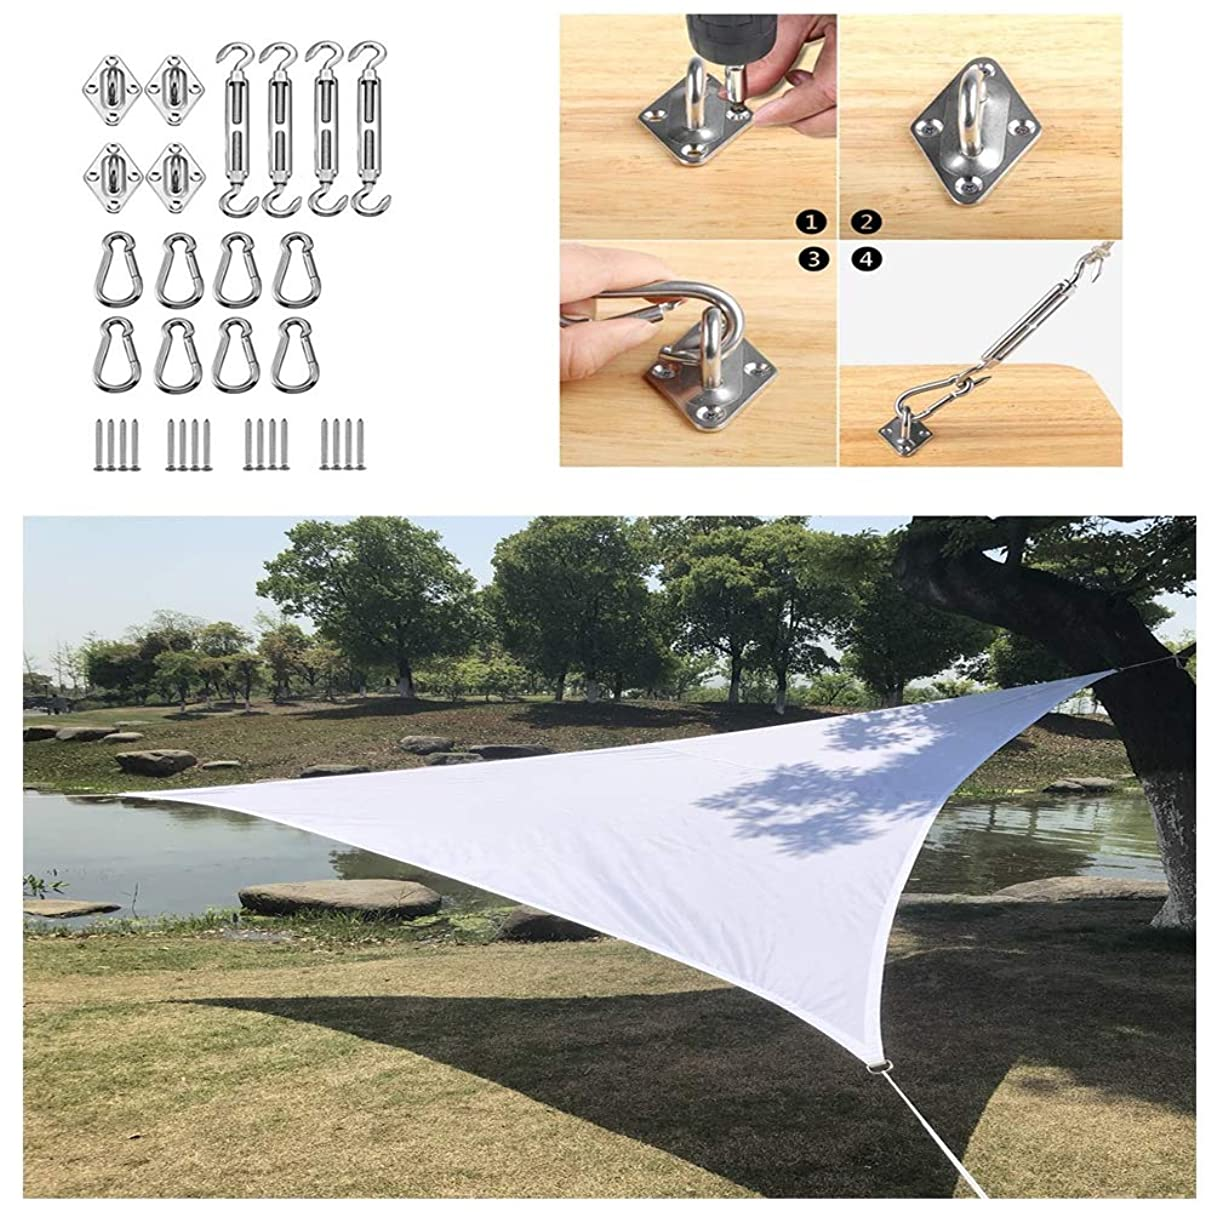 Awnings Outdoor Shade Sail Garden 95% Anti-uv Waterproof Mildew-Proof Triangular Shade Sail for Garden Pool Terrace Custom Size (with Accessories)